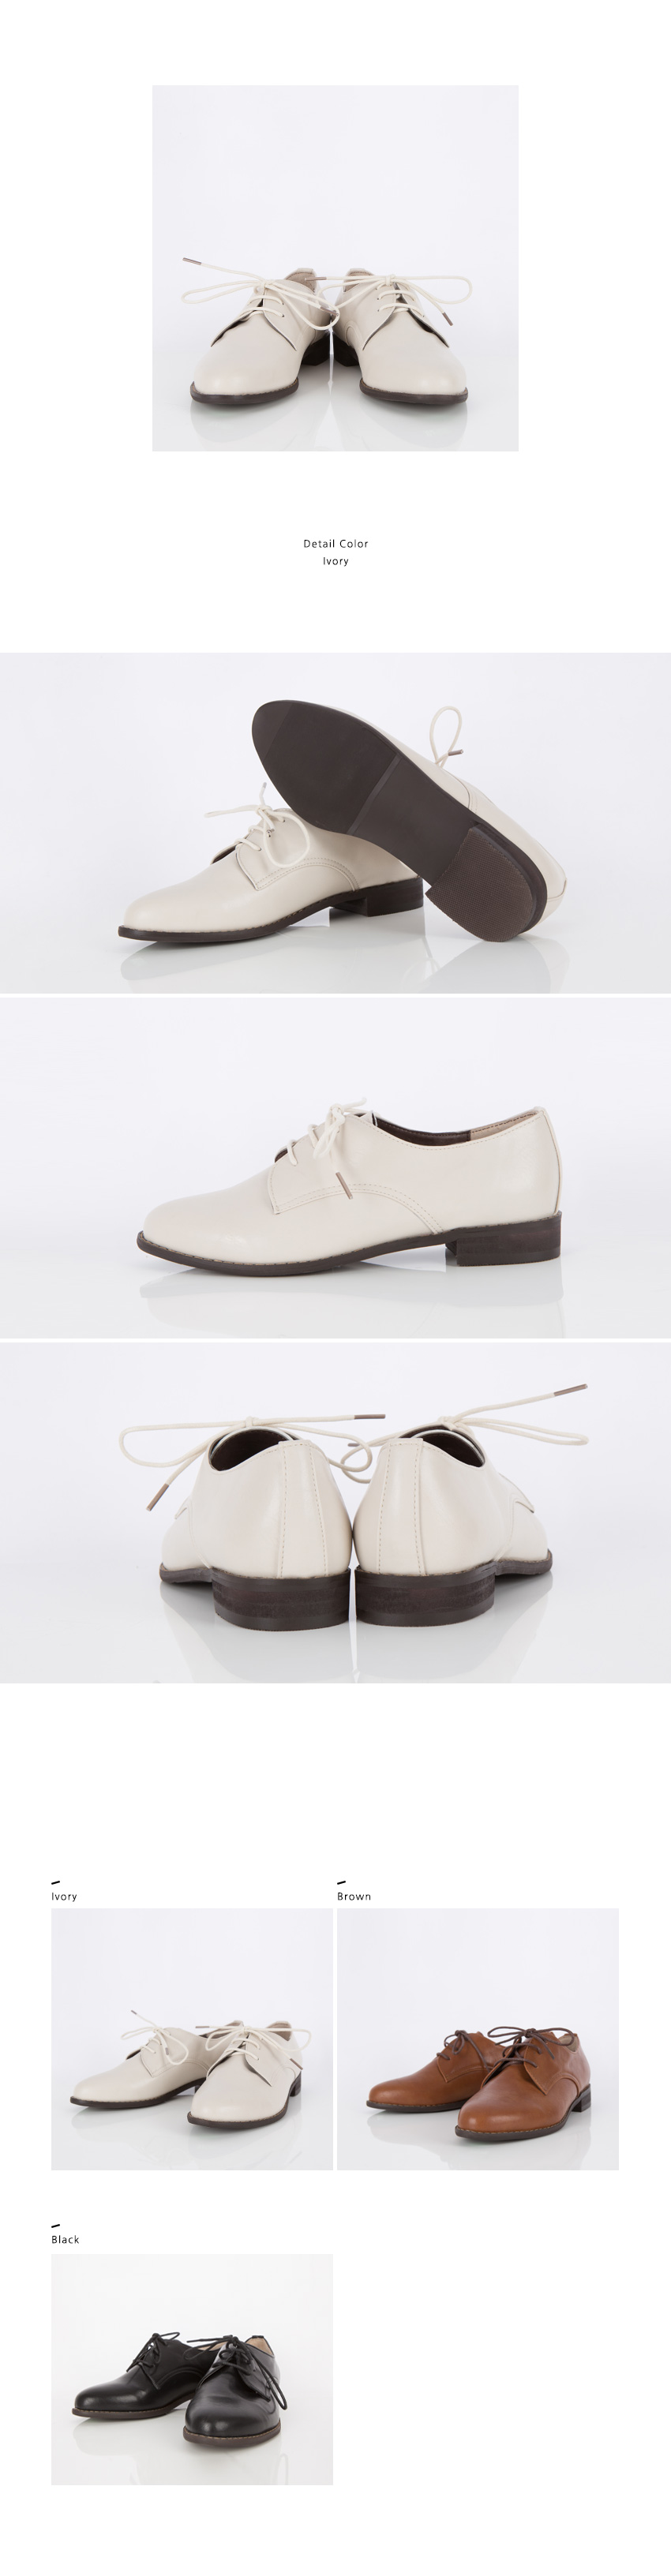 Basic Oxford Shoes|